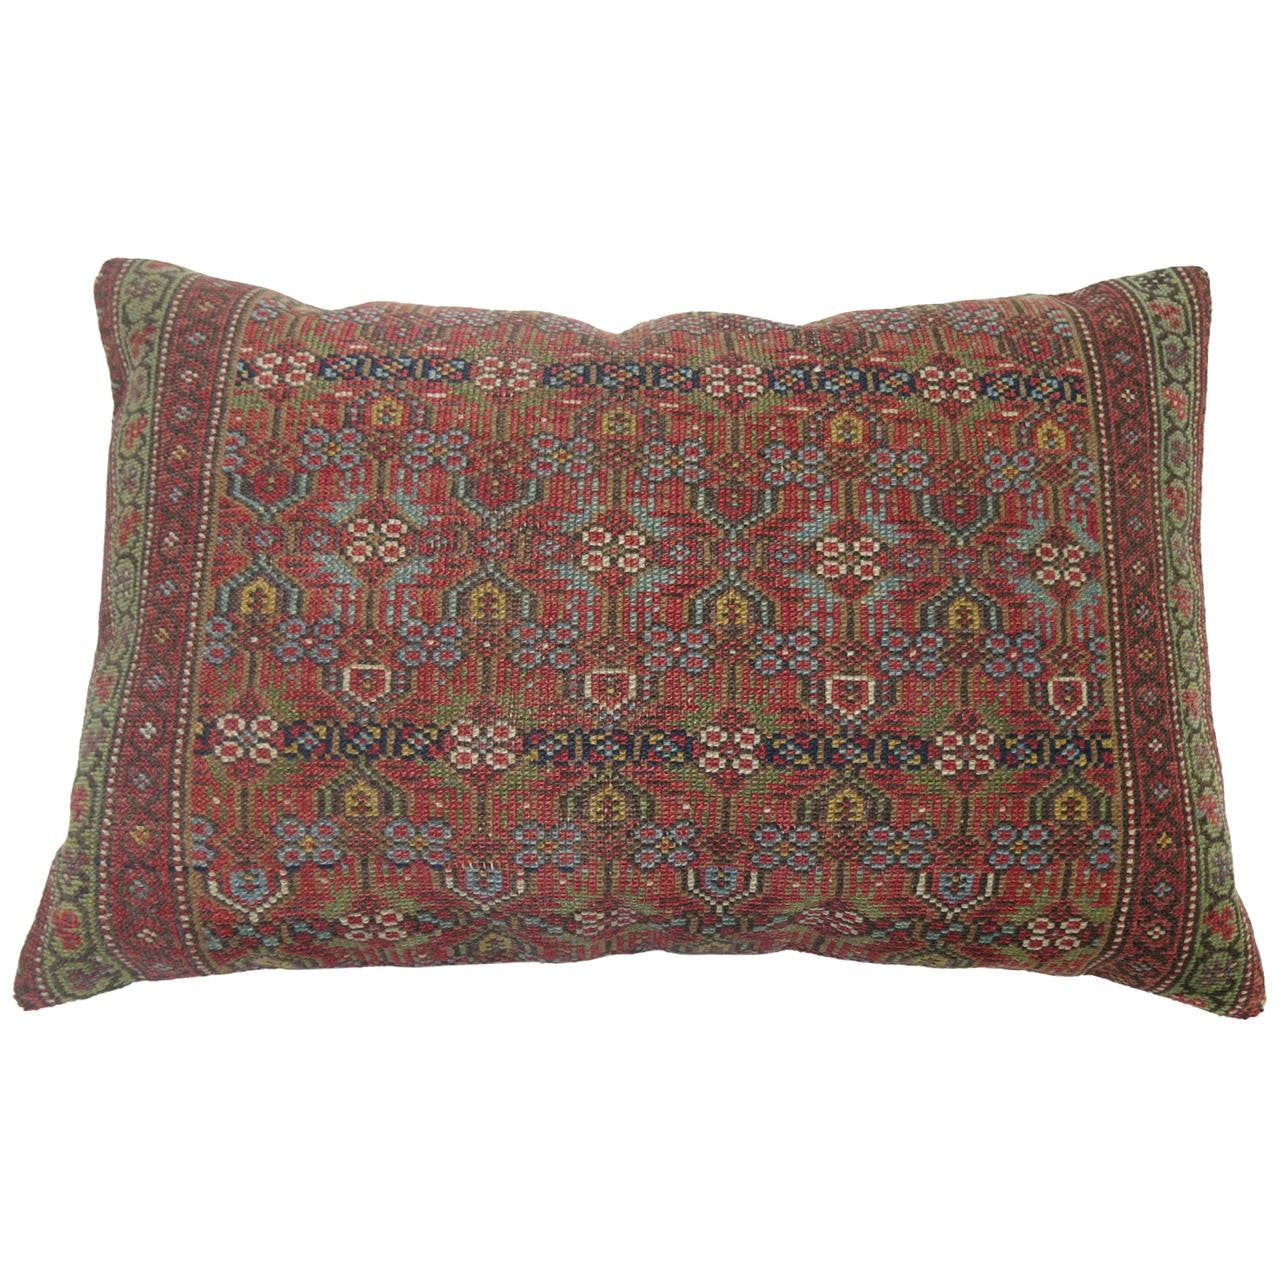 Zippered Floor Pillows : Persian Serab Lumbar Floor Pillow at 1stdibs